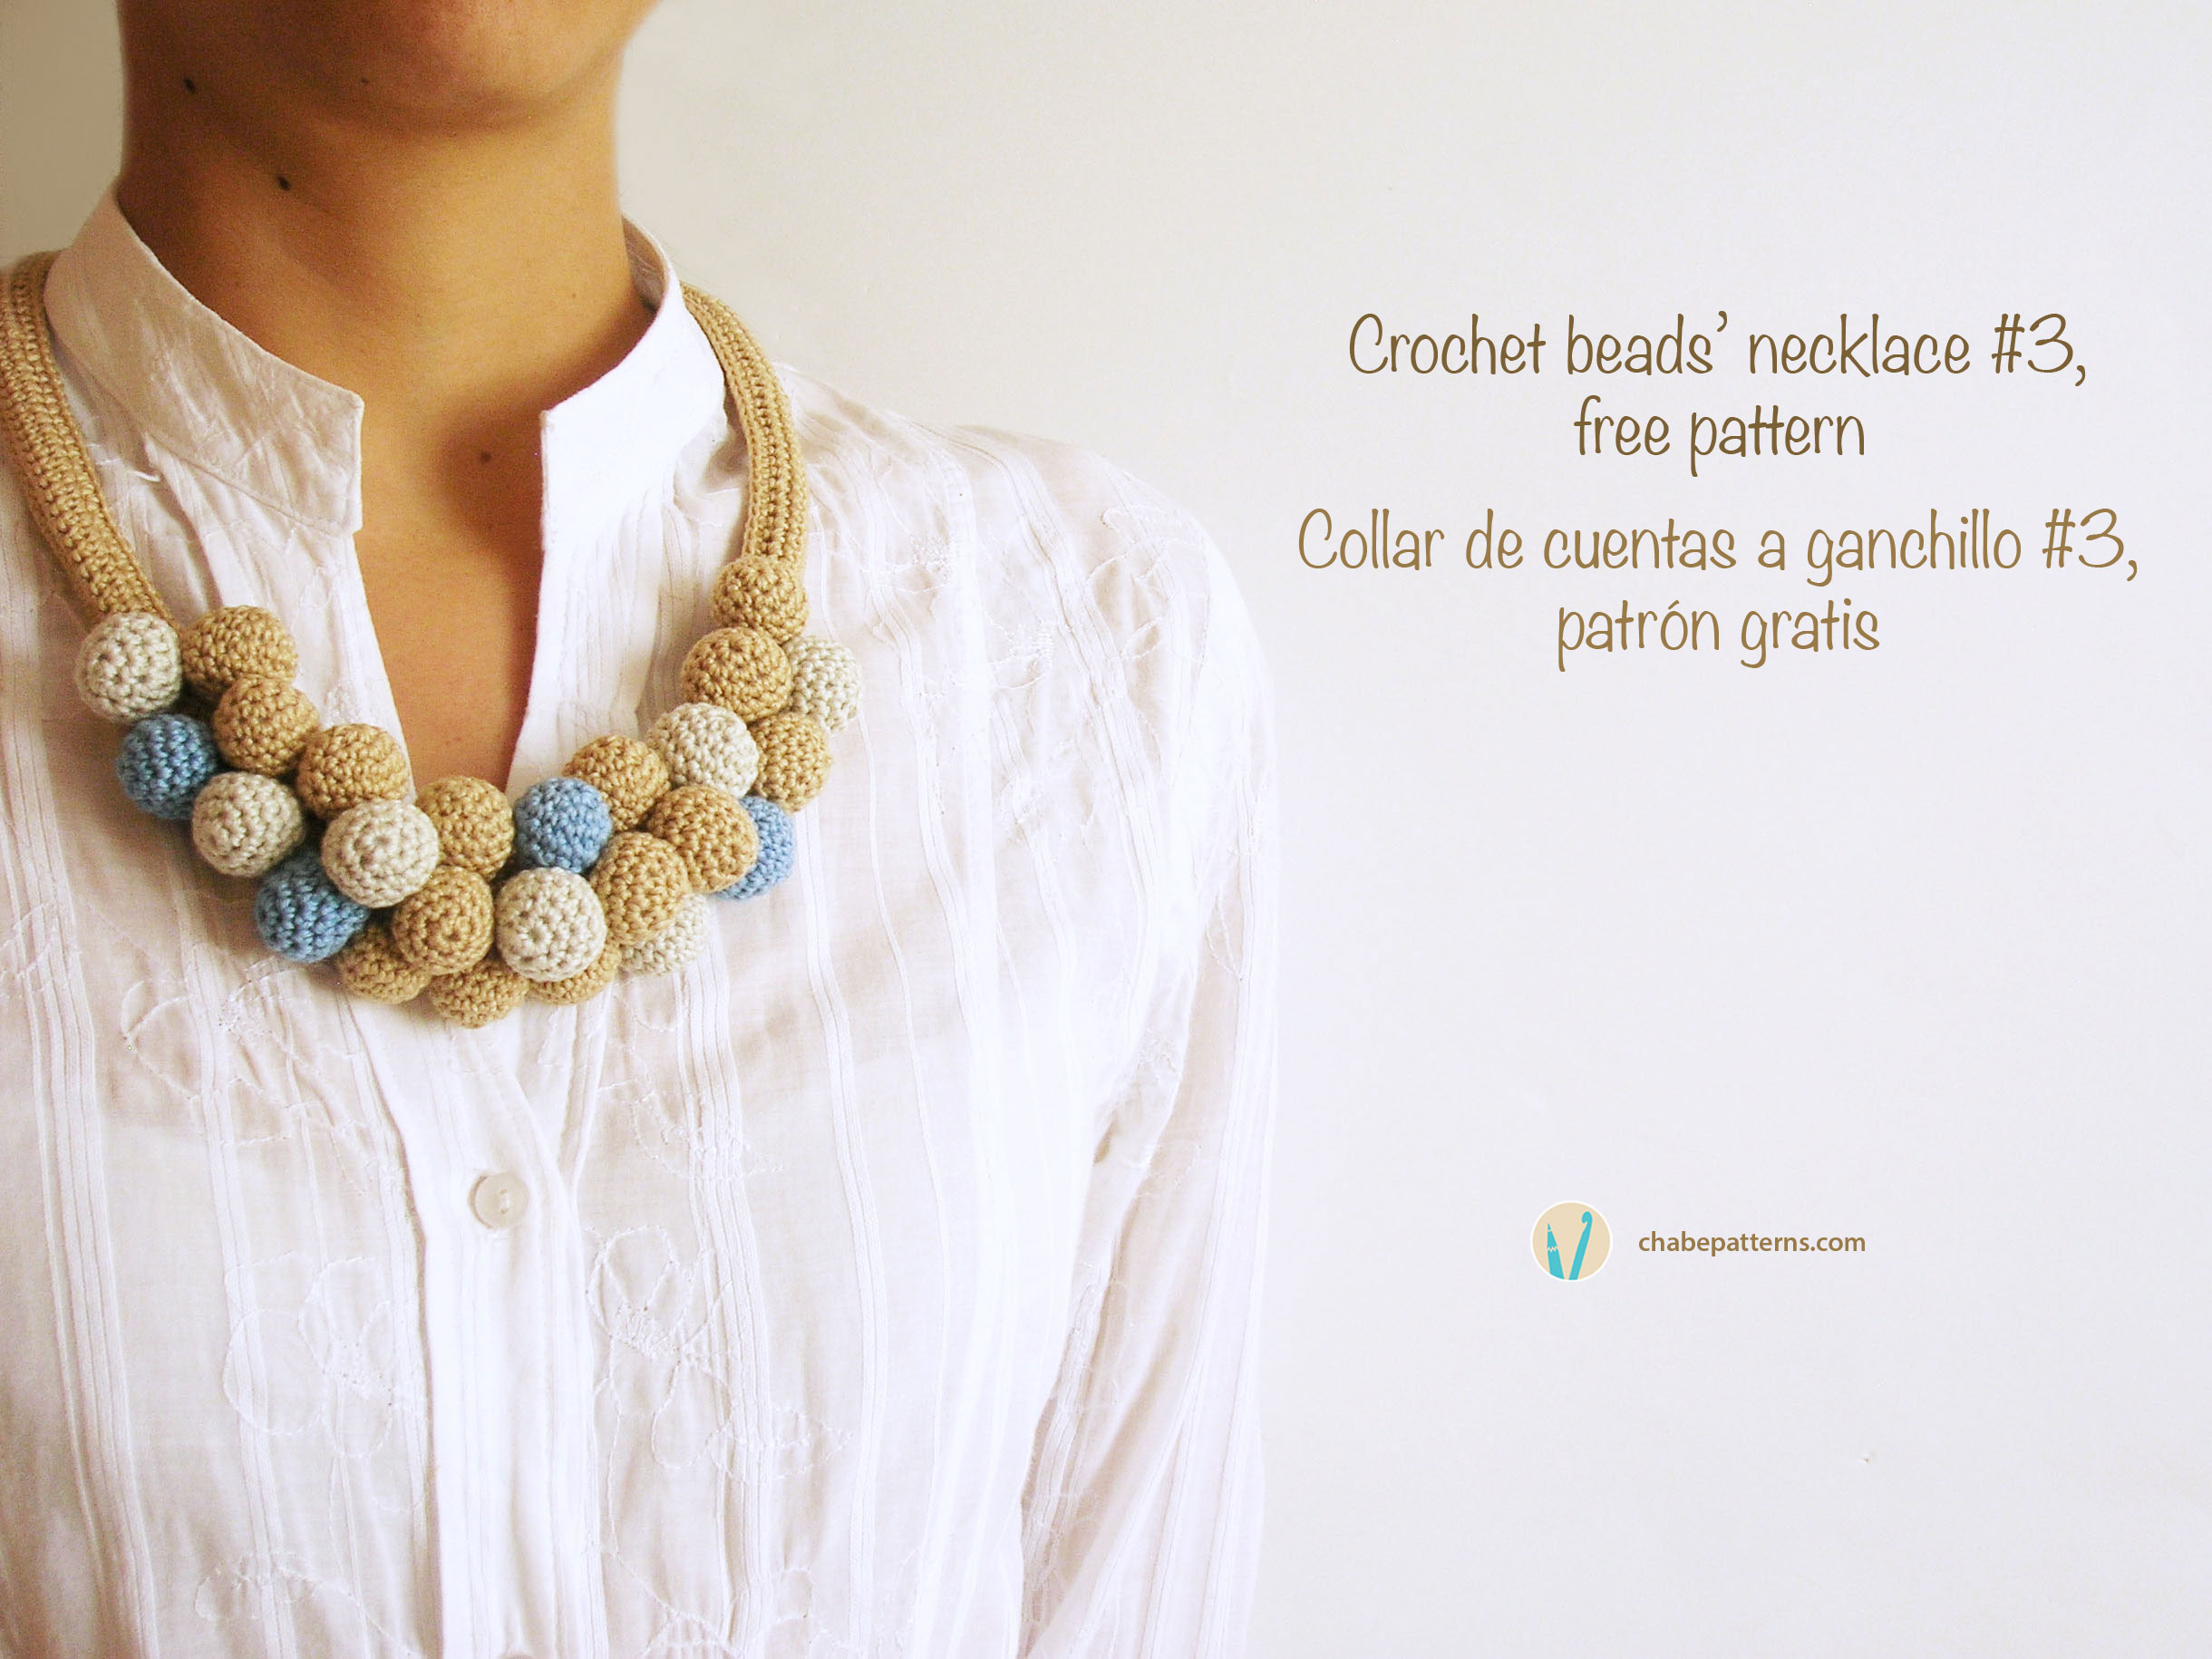 Crochet beads\' necklace #3/ Collar de cuentas tejidas #3